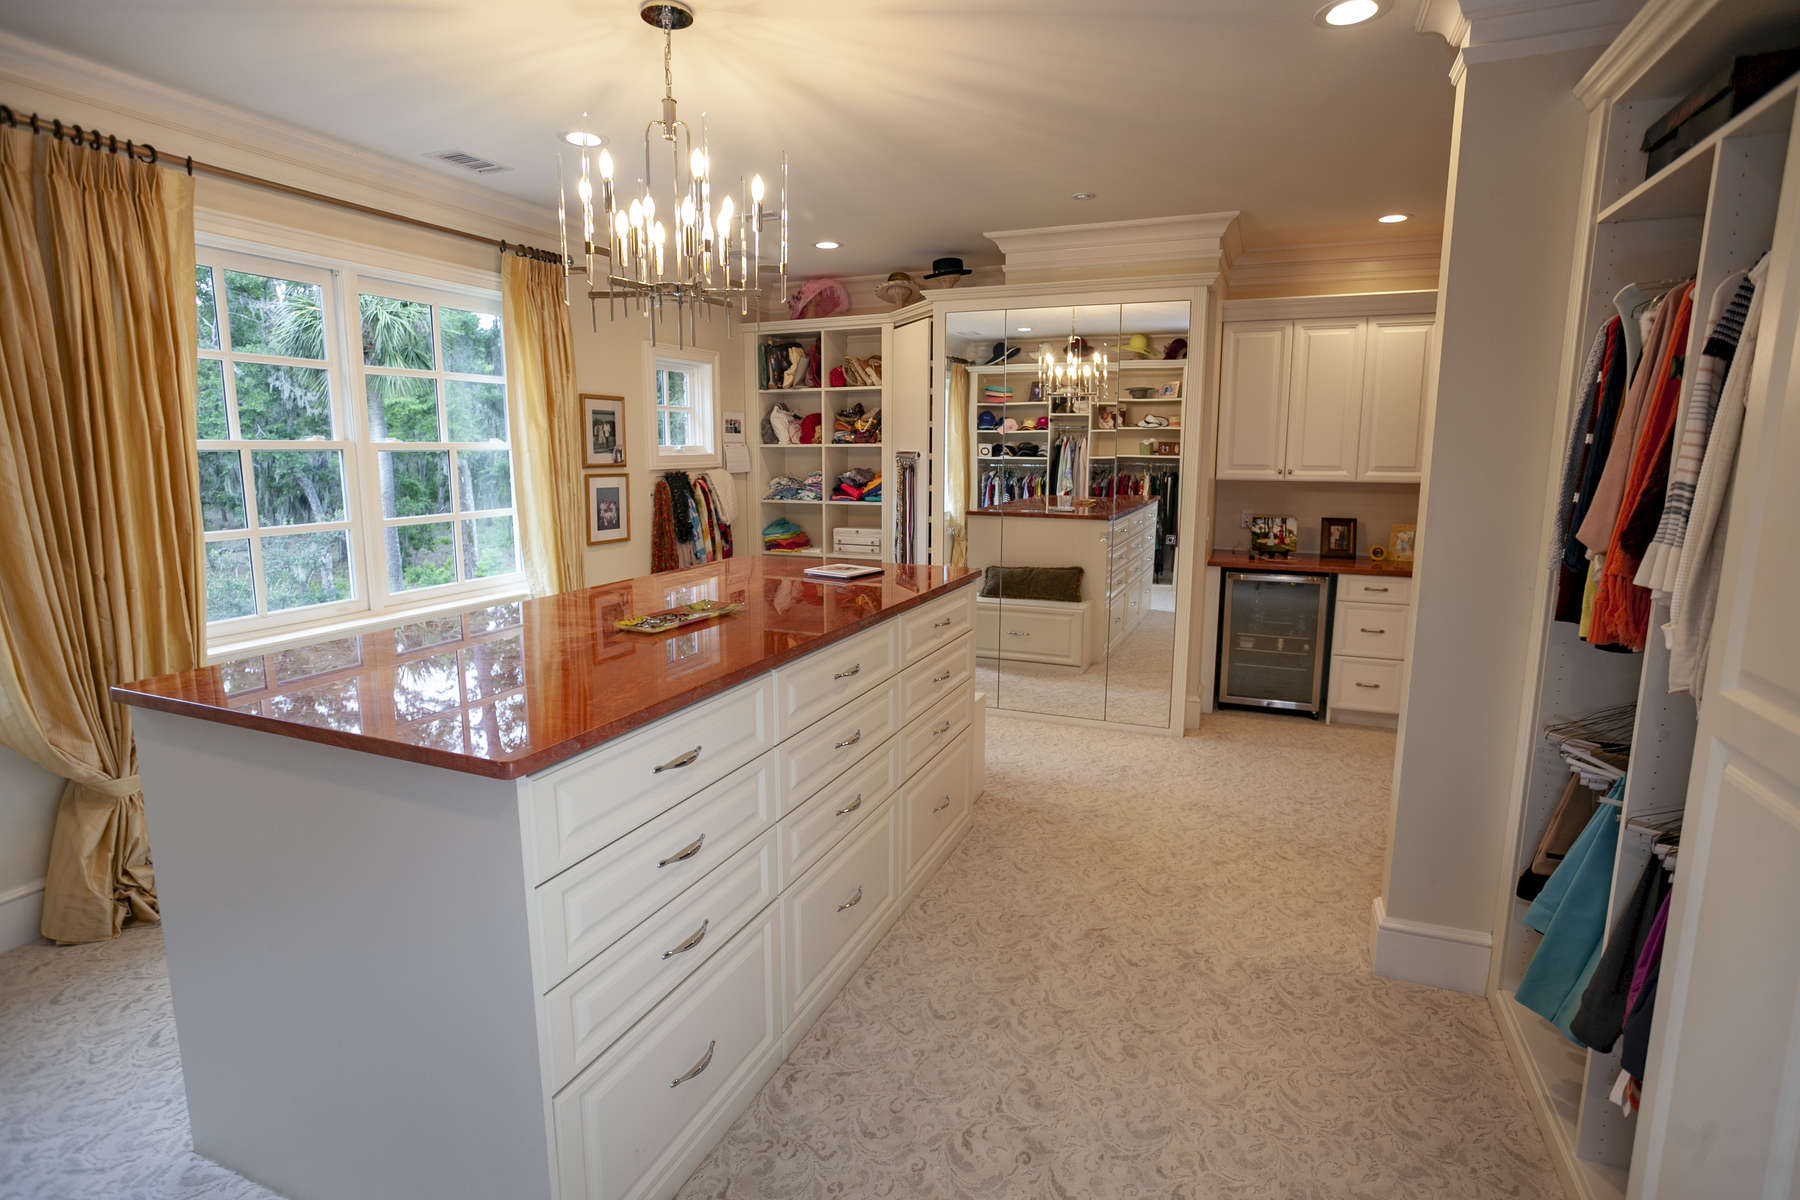 Colleton-River-After-Hers-Master-Closet-2